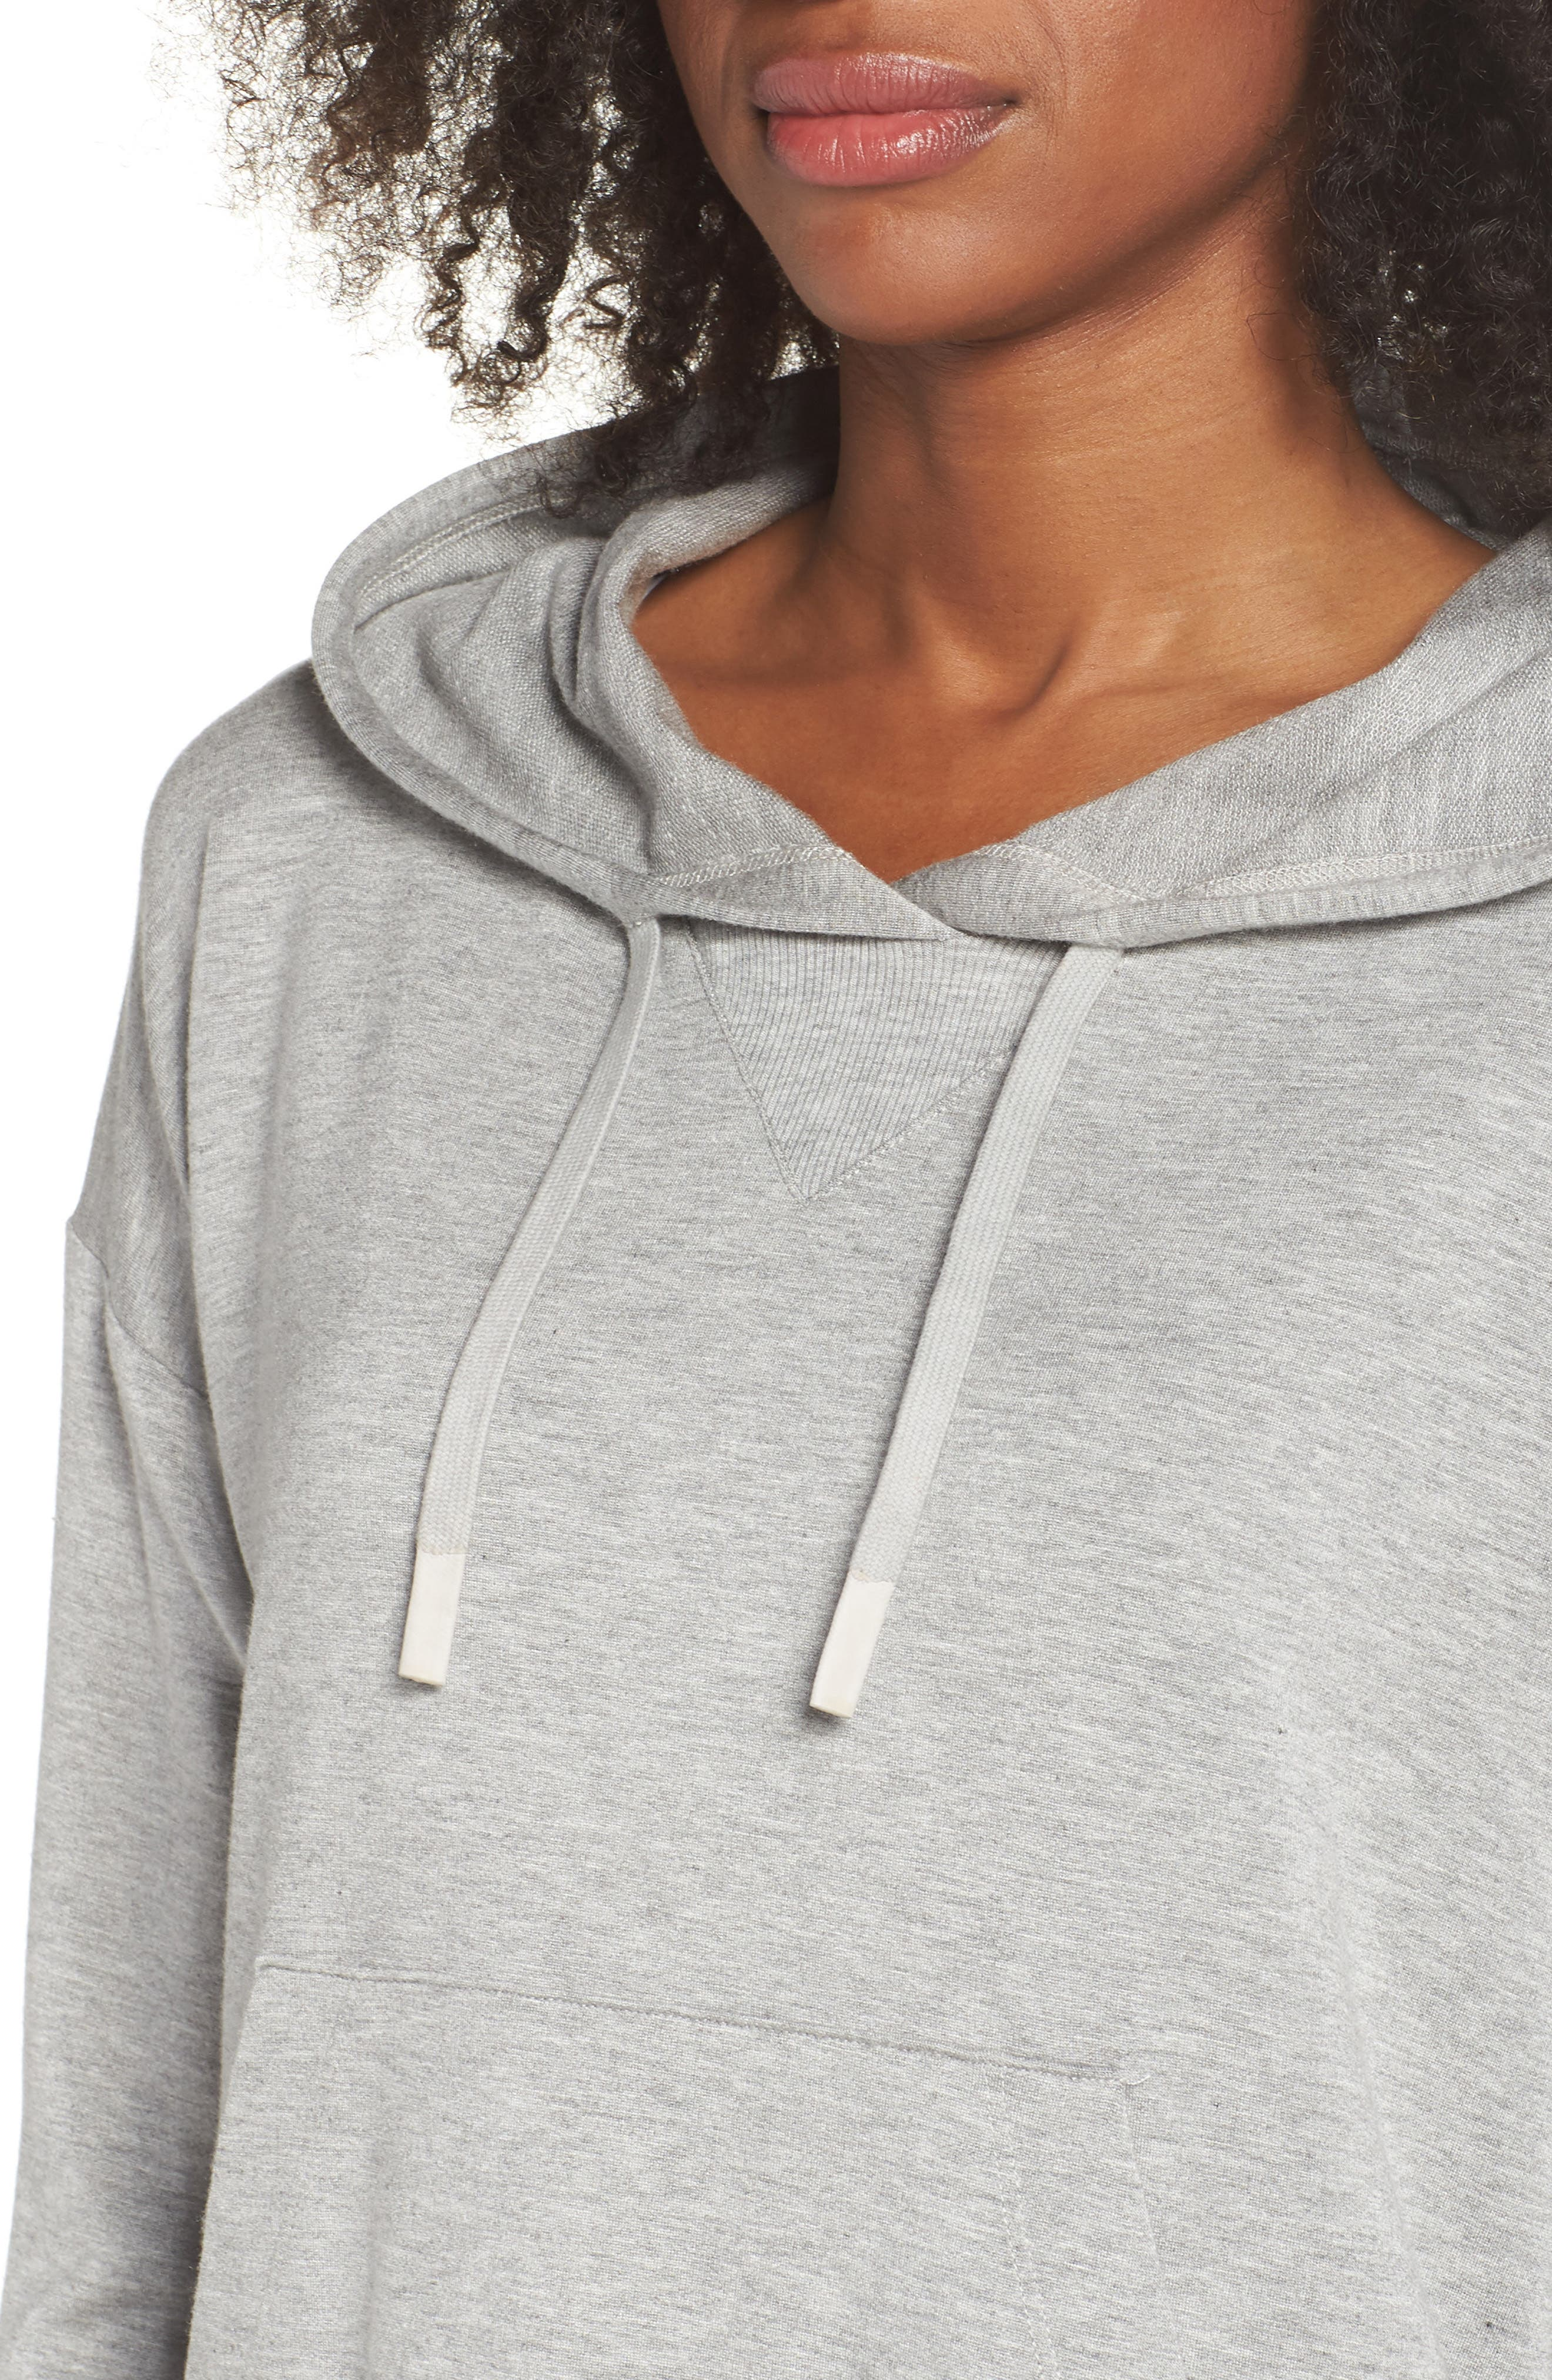 Pacific Hoodie,                             Alternate thumbnail 4, color,                             LIGHT HEATHER GREY